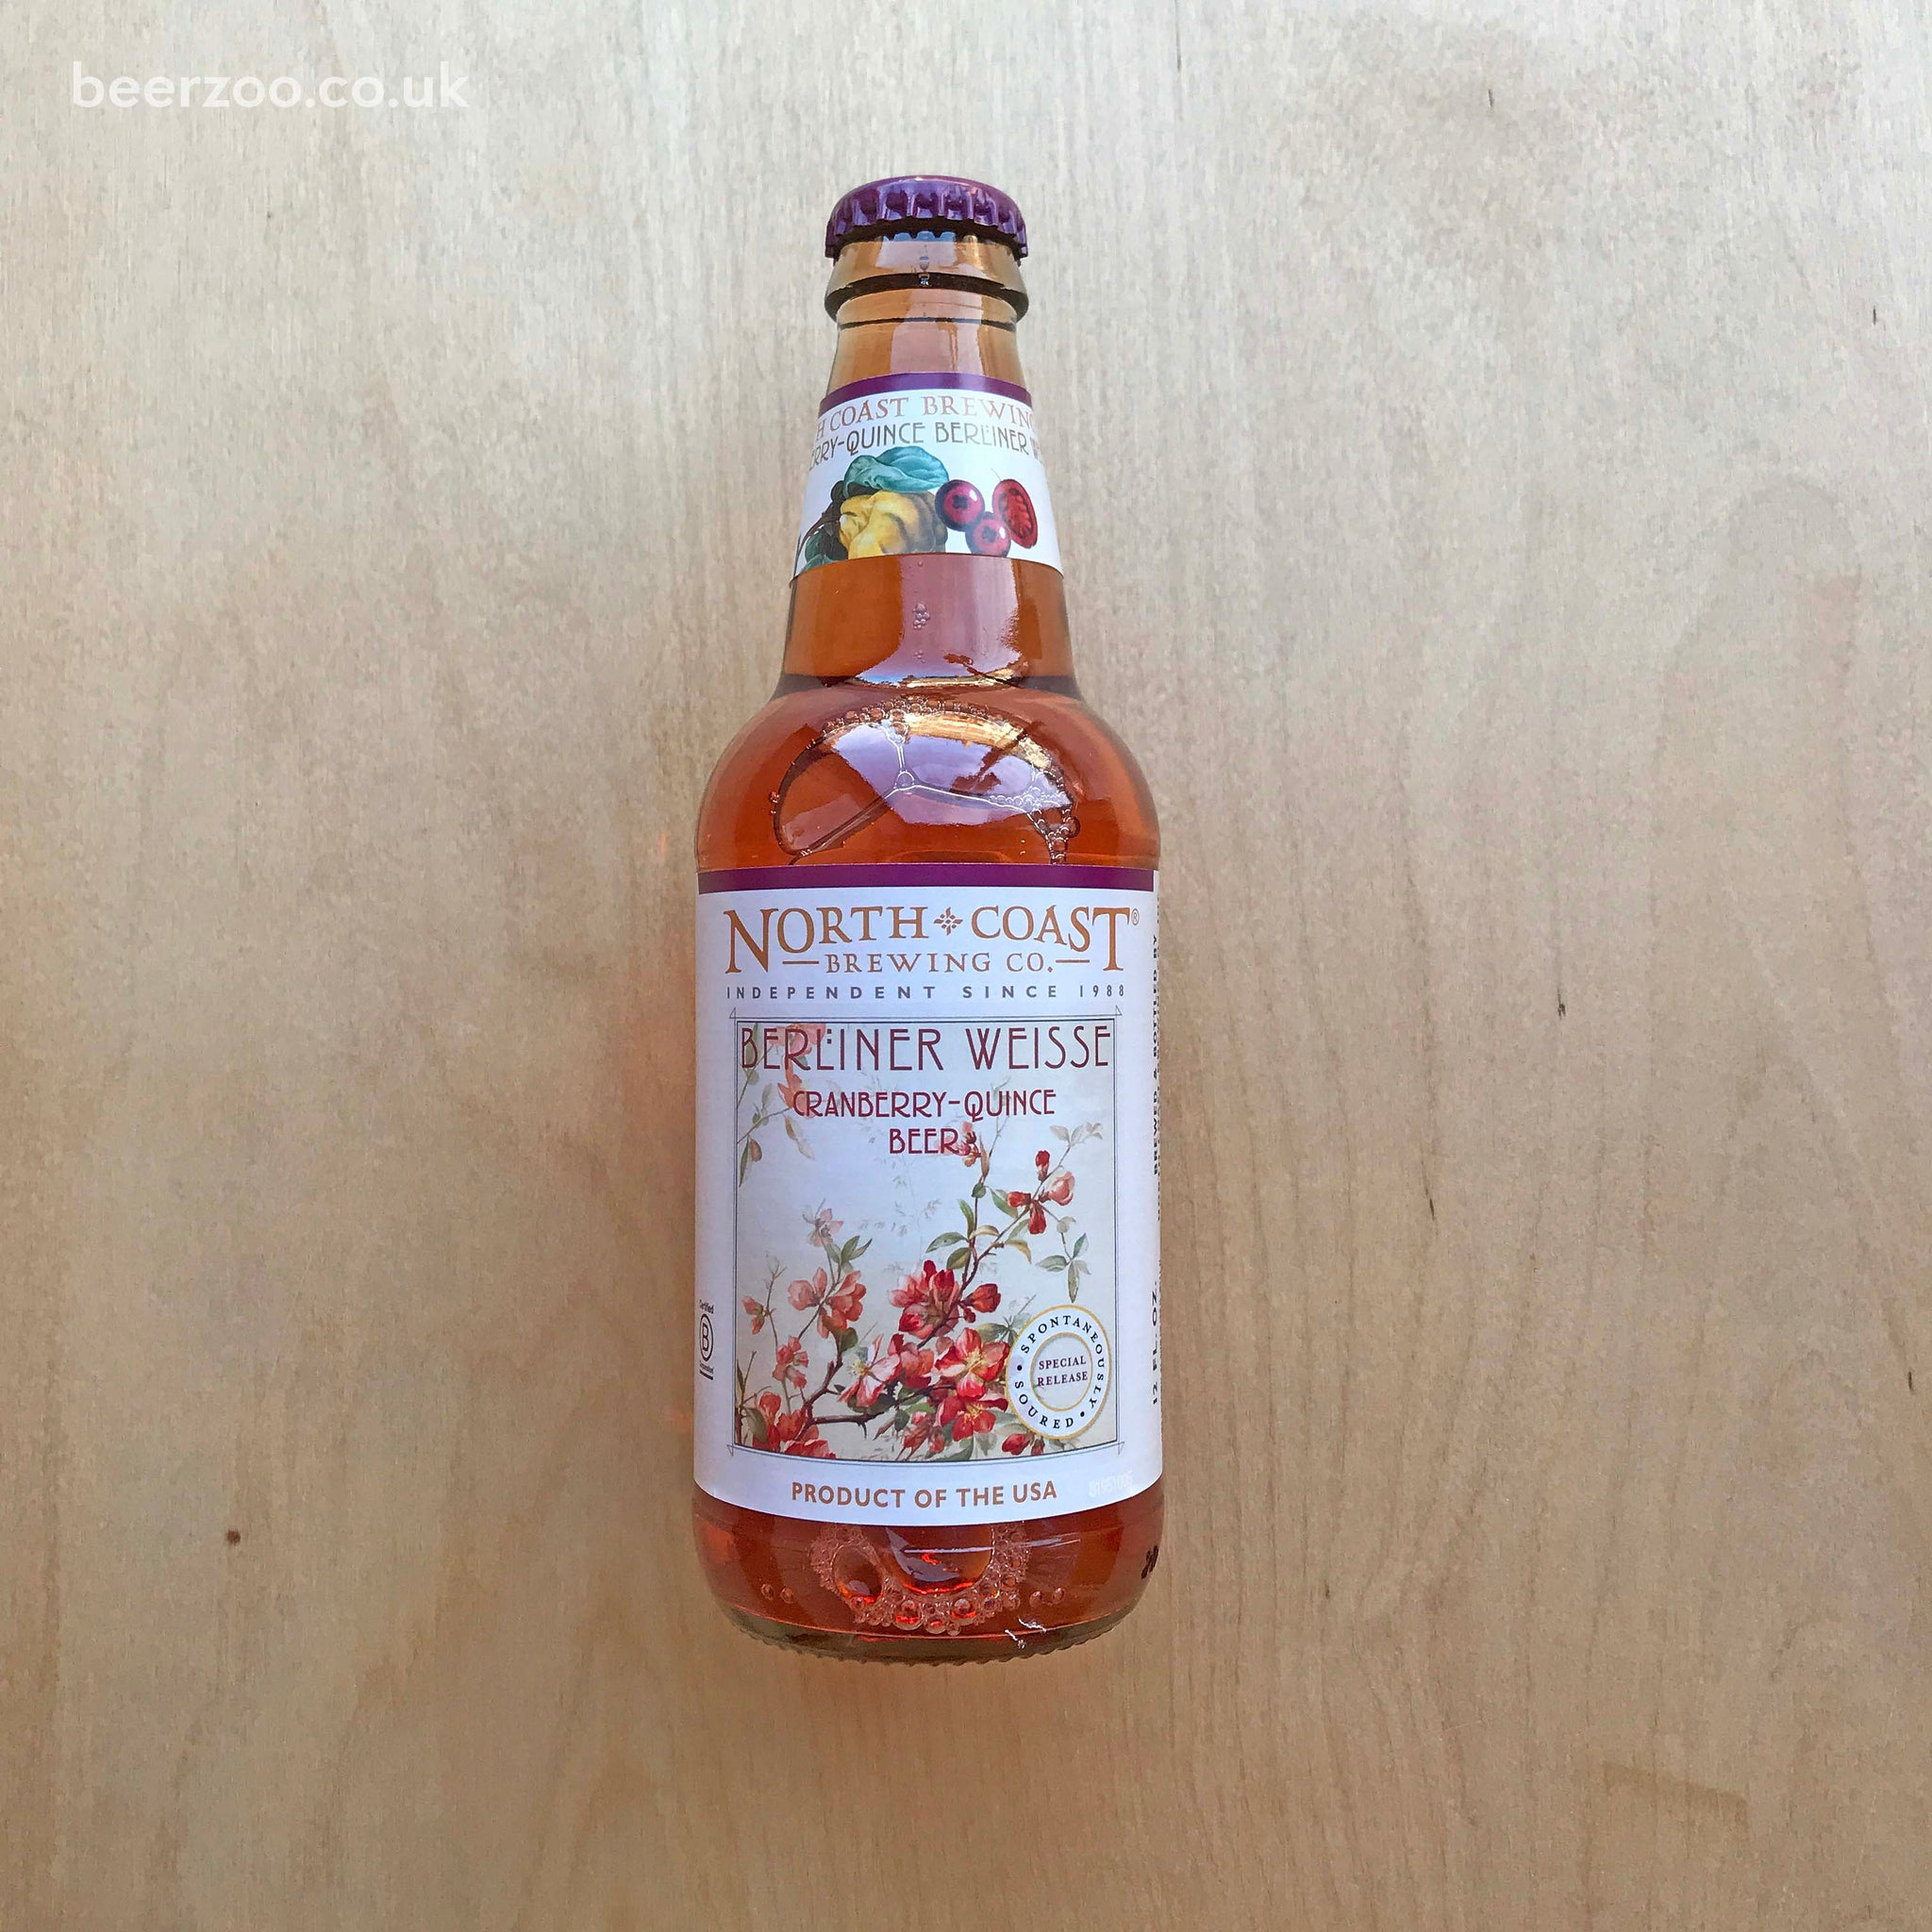 North Coast - Berliner Weisse Cranberry Quince 4.1% (355ml)